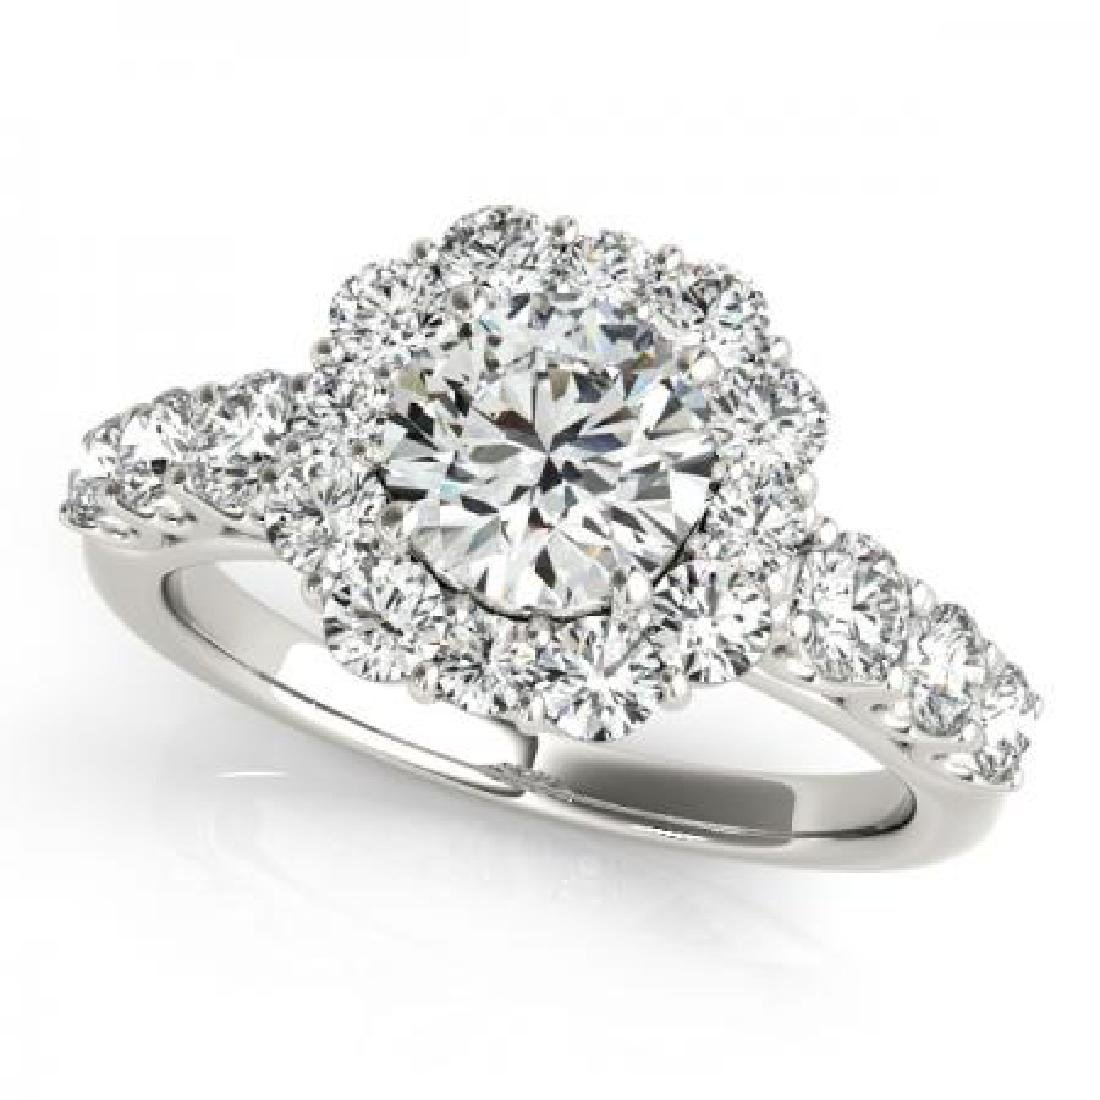 CERTIFIED PLATINUM 2.08 CT G-H/VS-SI1 DIAMOND HALO ENGA